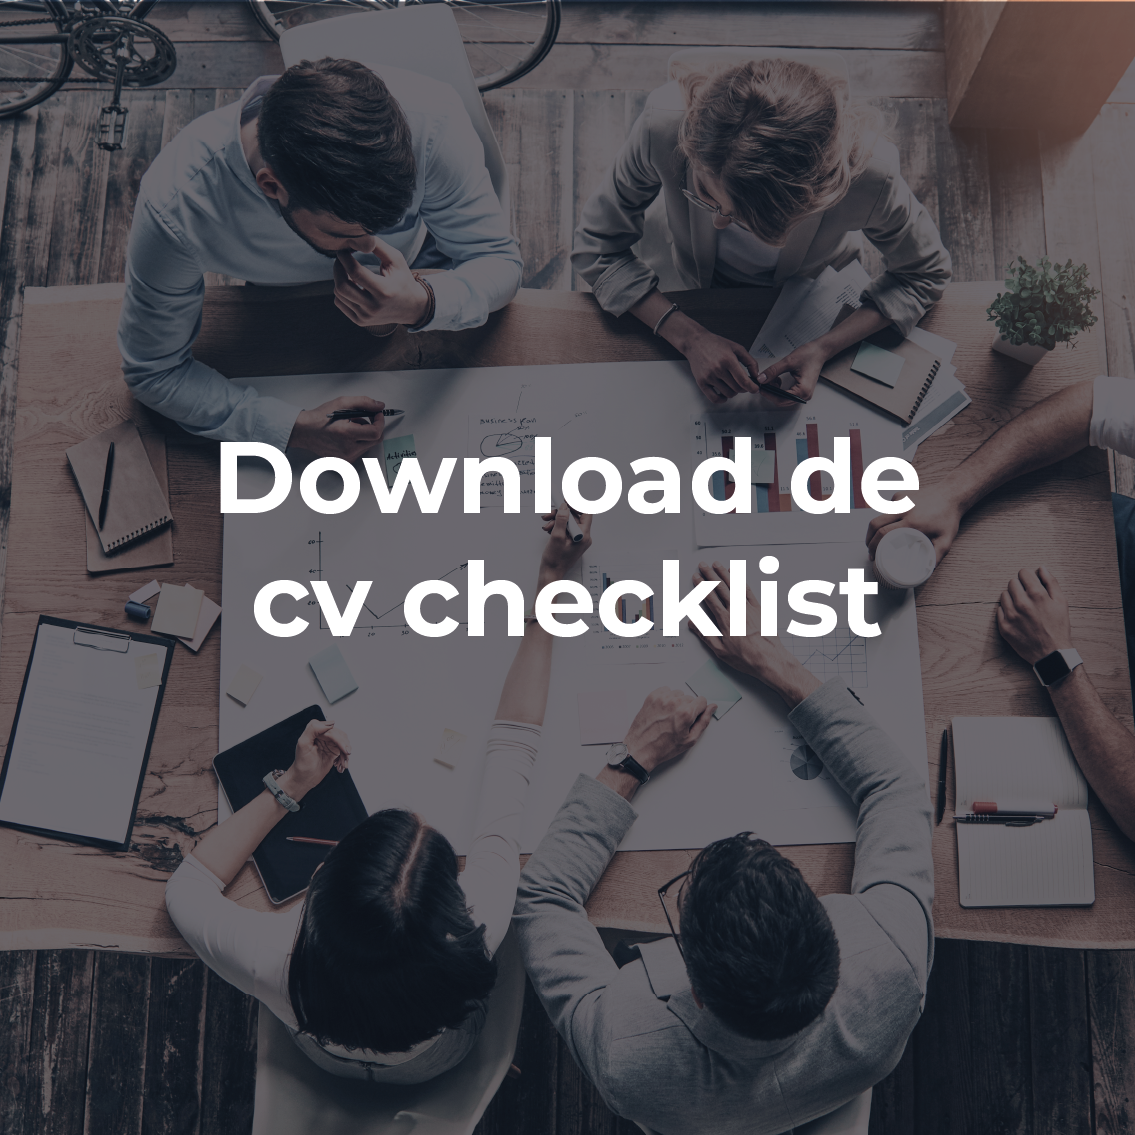 Download de cv checklist